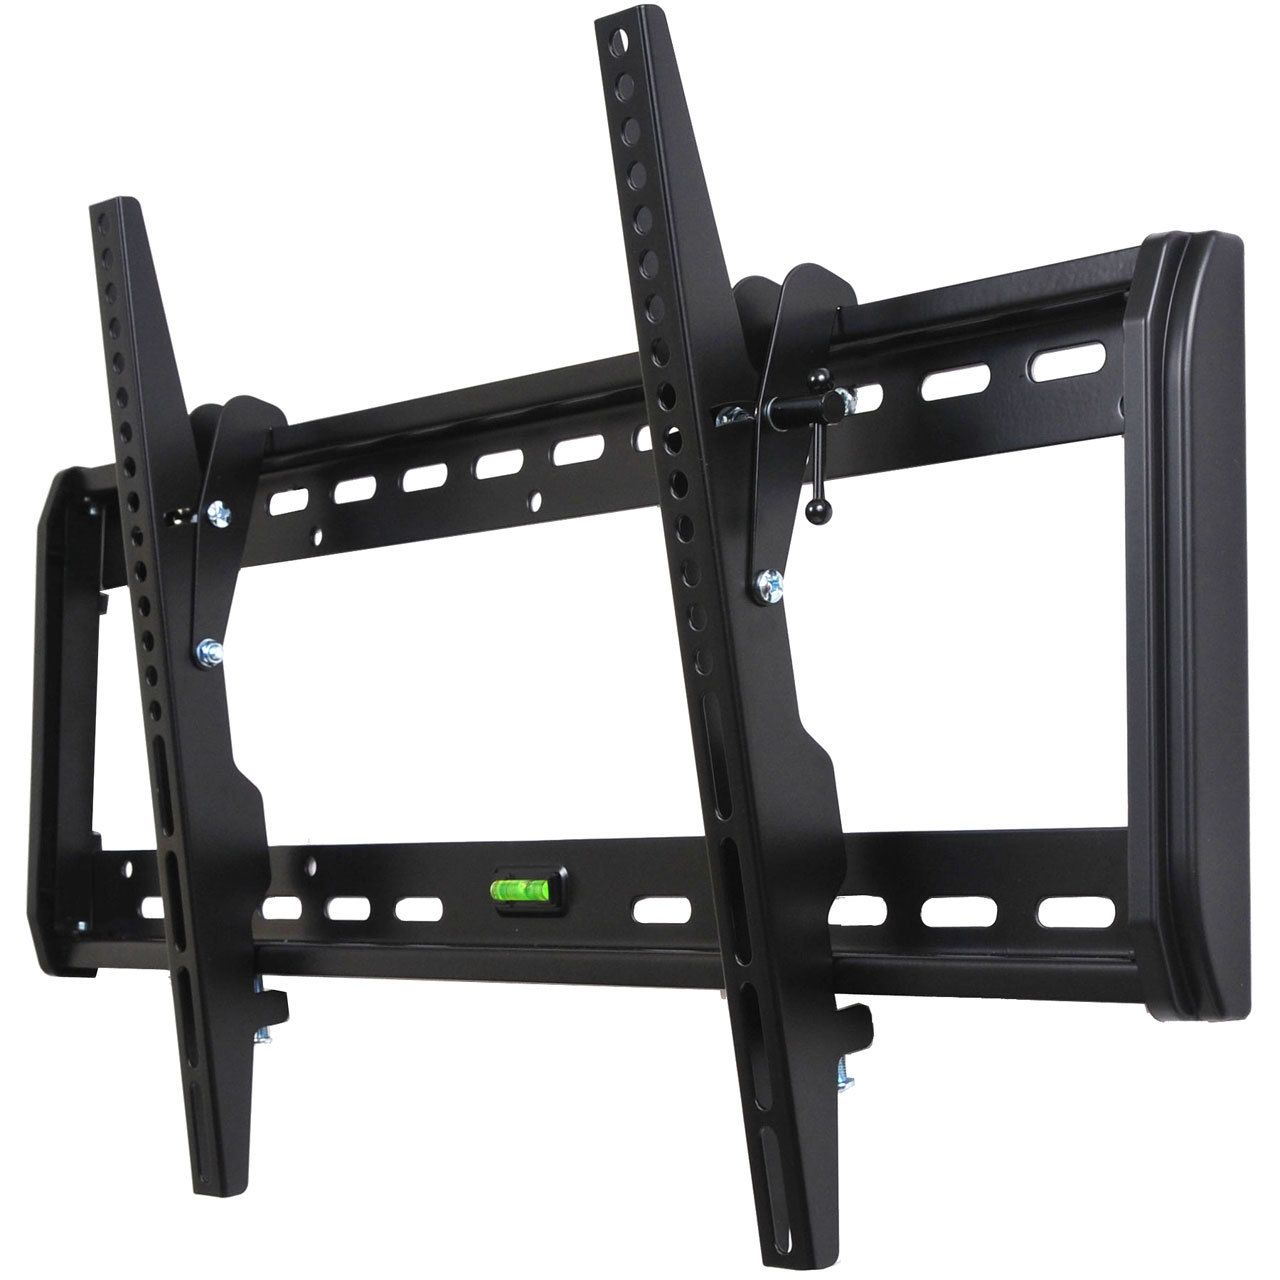 VideoSecu Tilt TV Wall Mount for 32 37 40 42 46 47 50 52 55 58 60 65 LCD  LED Plasma HDTV, some models up to 70 75 Flat Panel Screen Display Max Load  ...